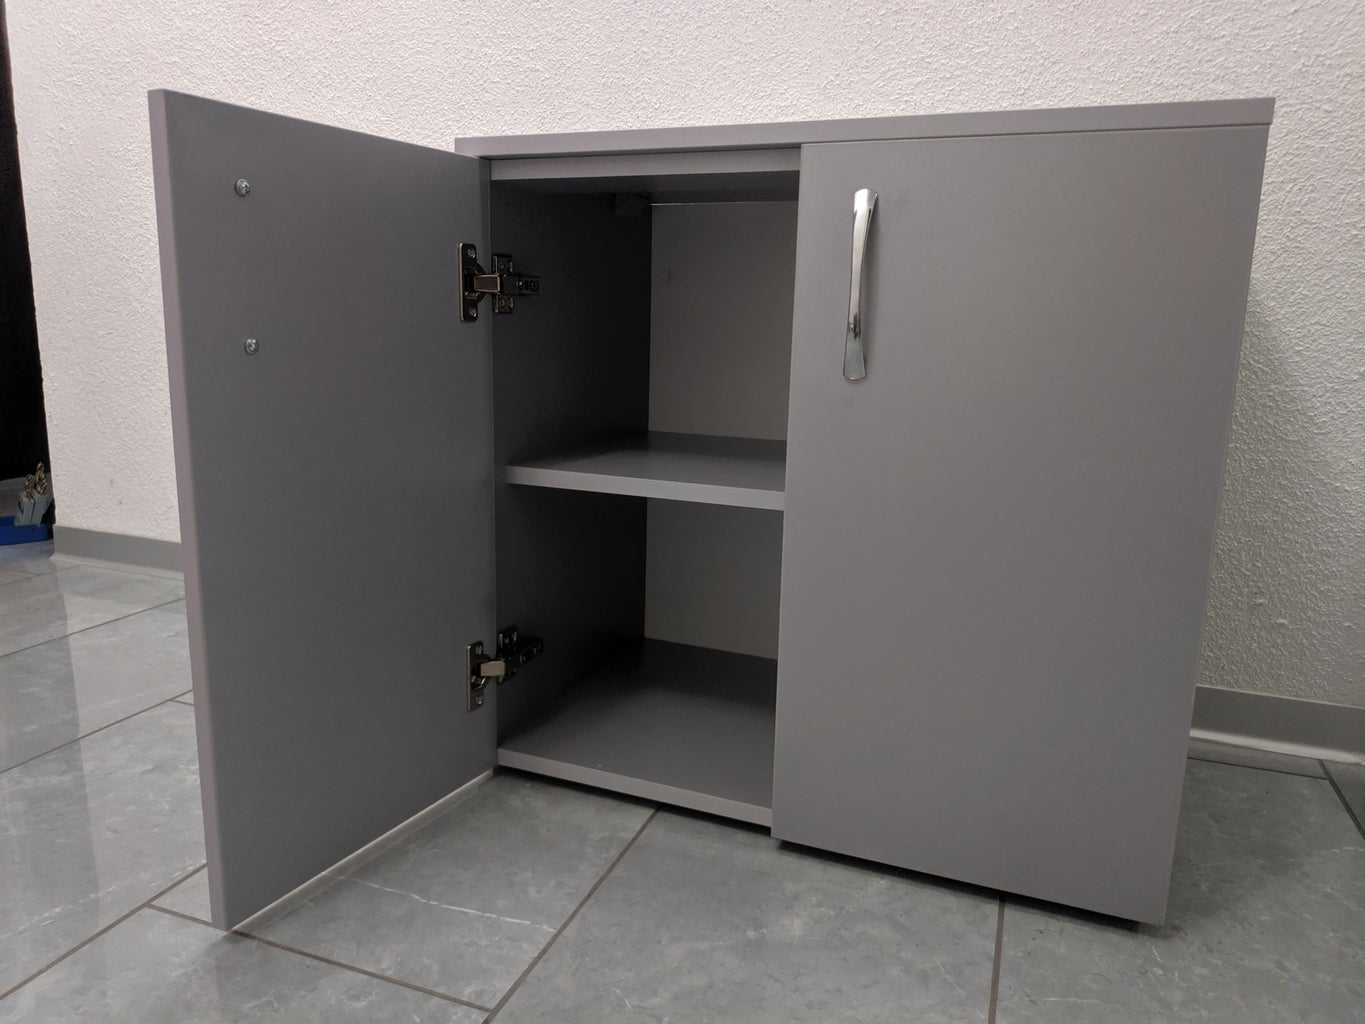 Install the Cabinets in Place and Enjoy